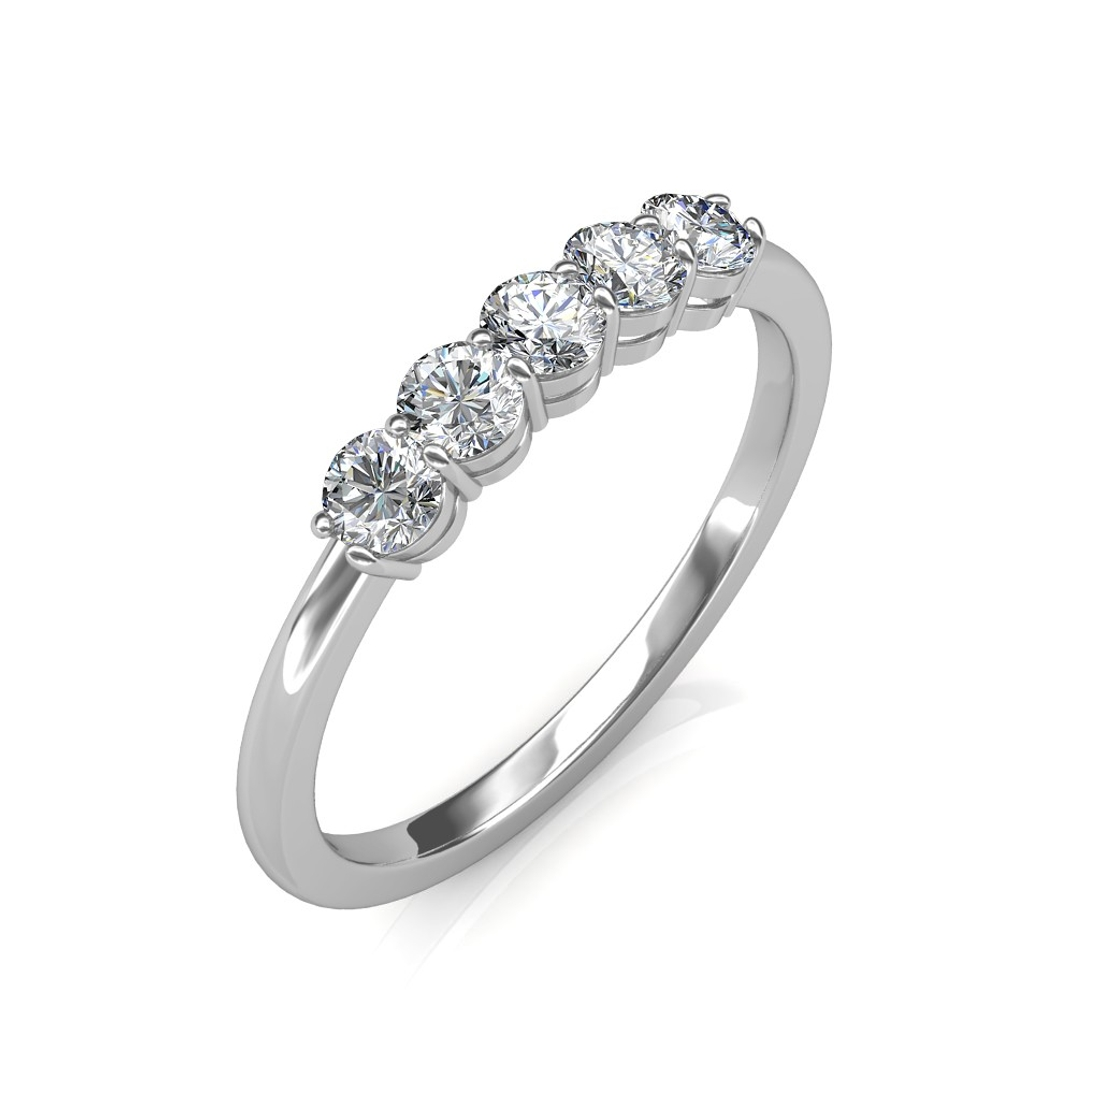 Sarvada Jewels' The Sublime Diamond Ring